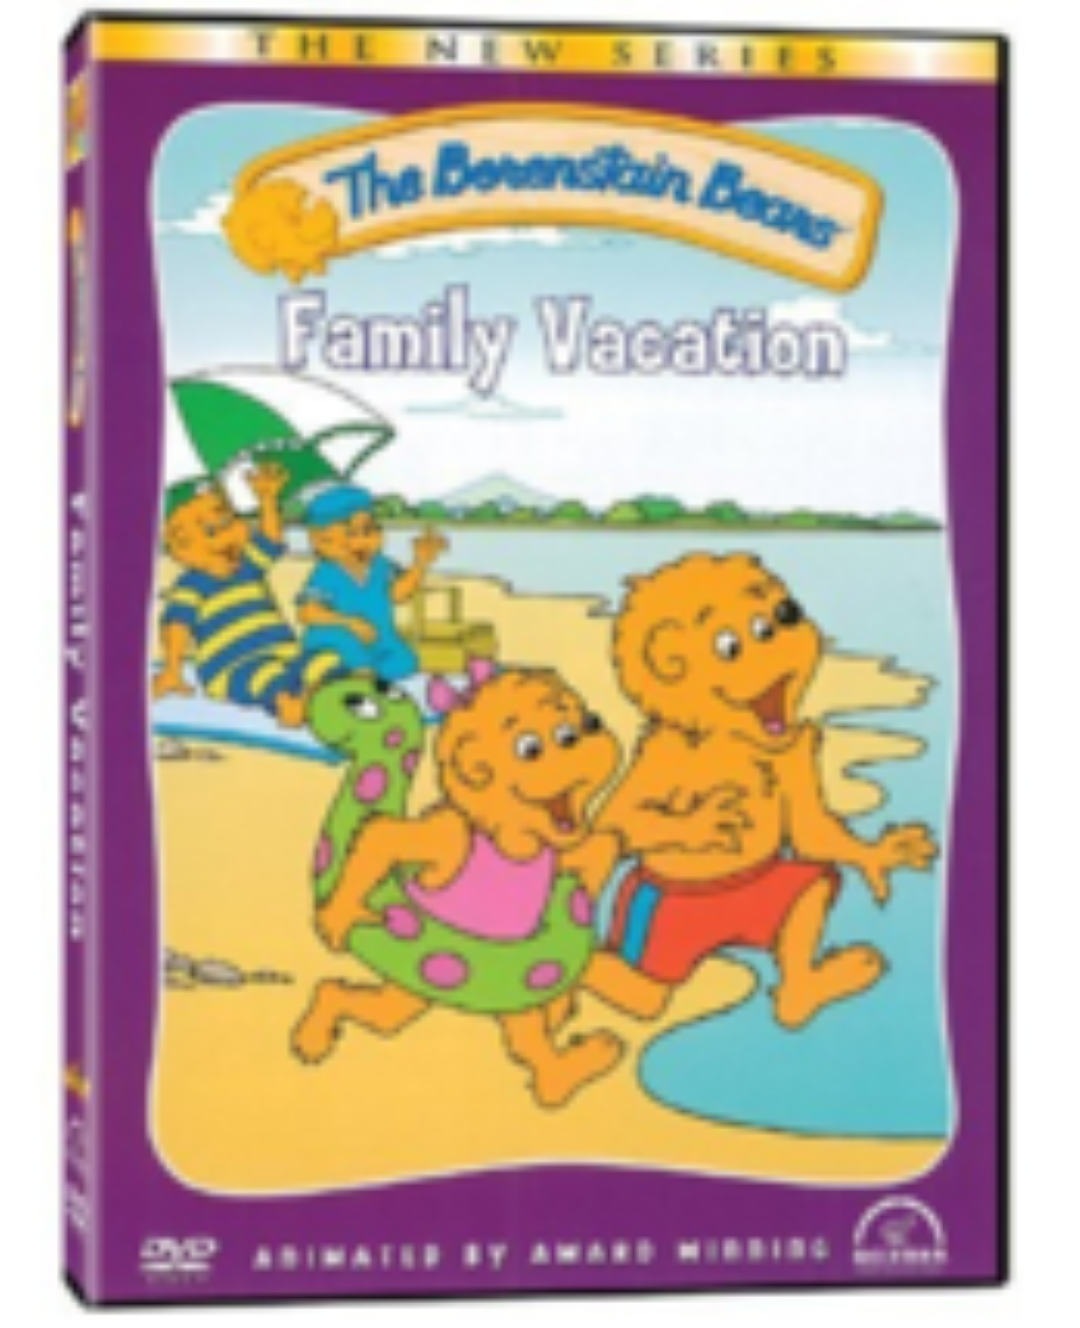 Family Vacation: Vol 6 Berenstain Bears Dvd